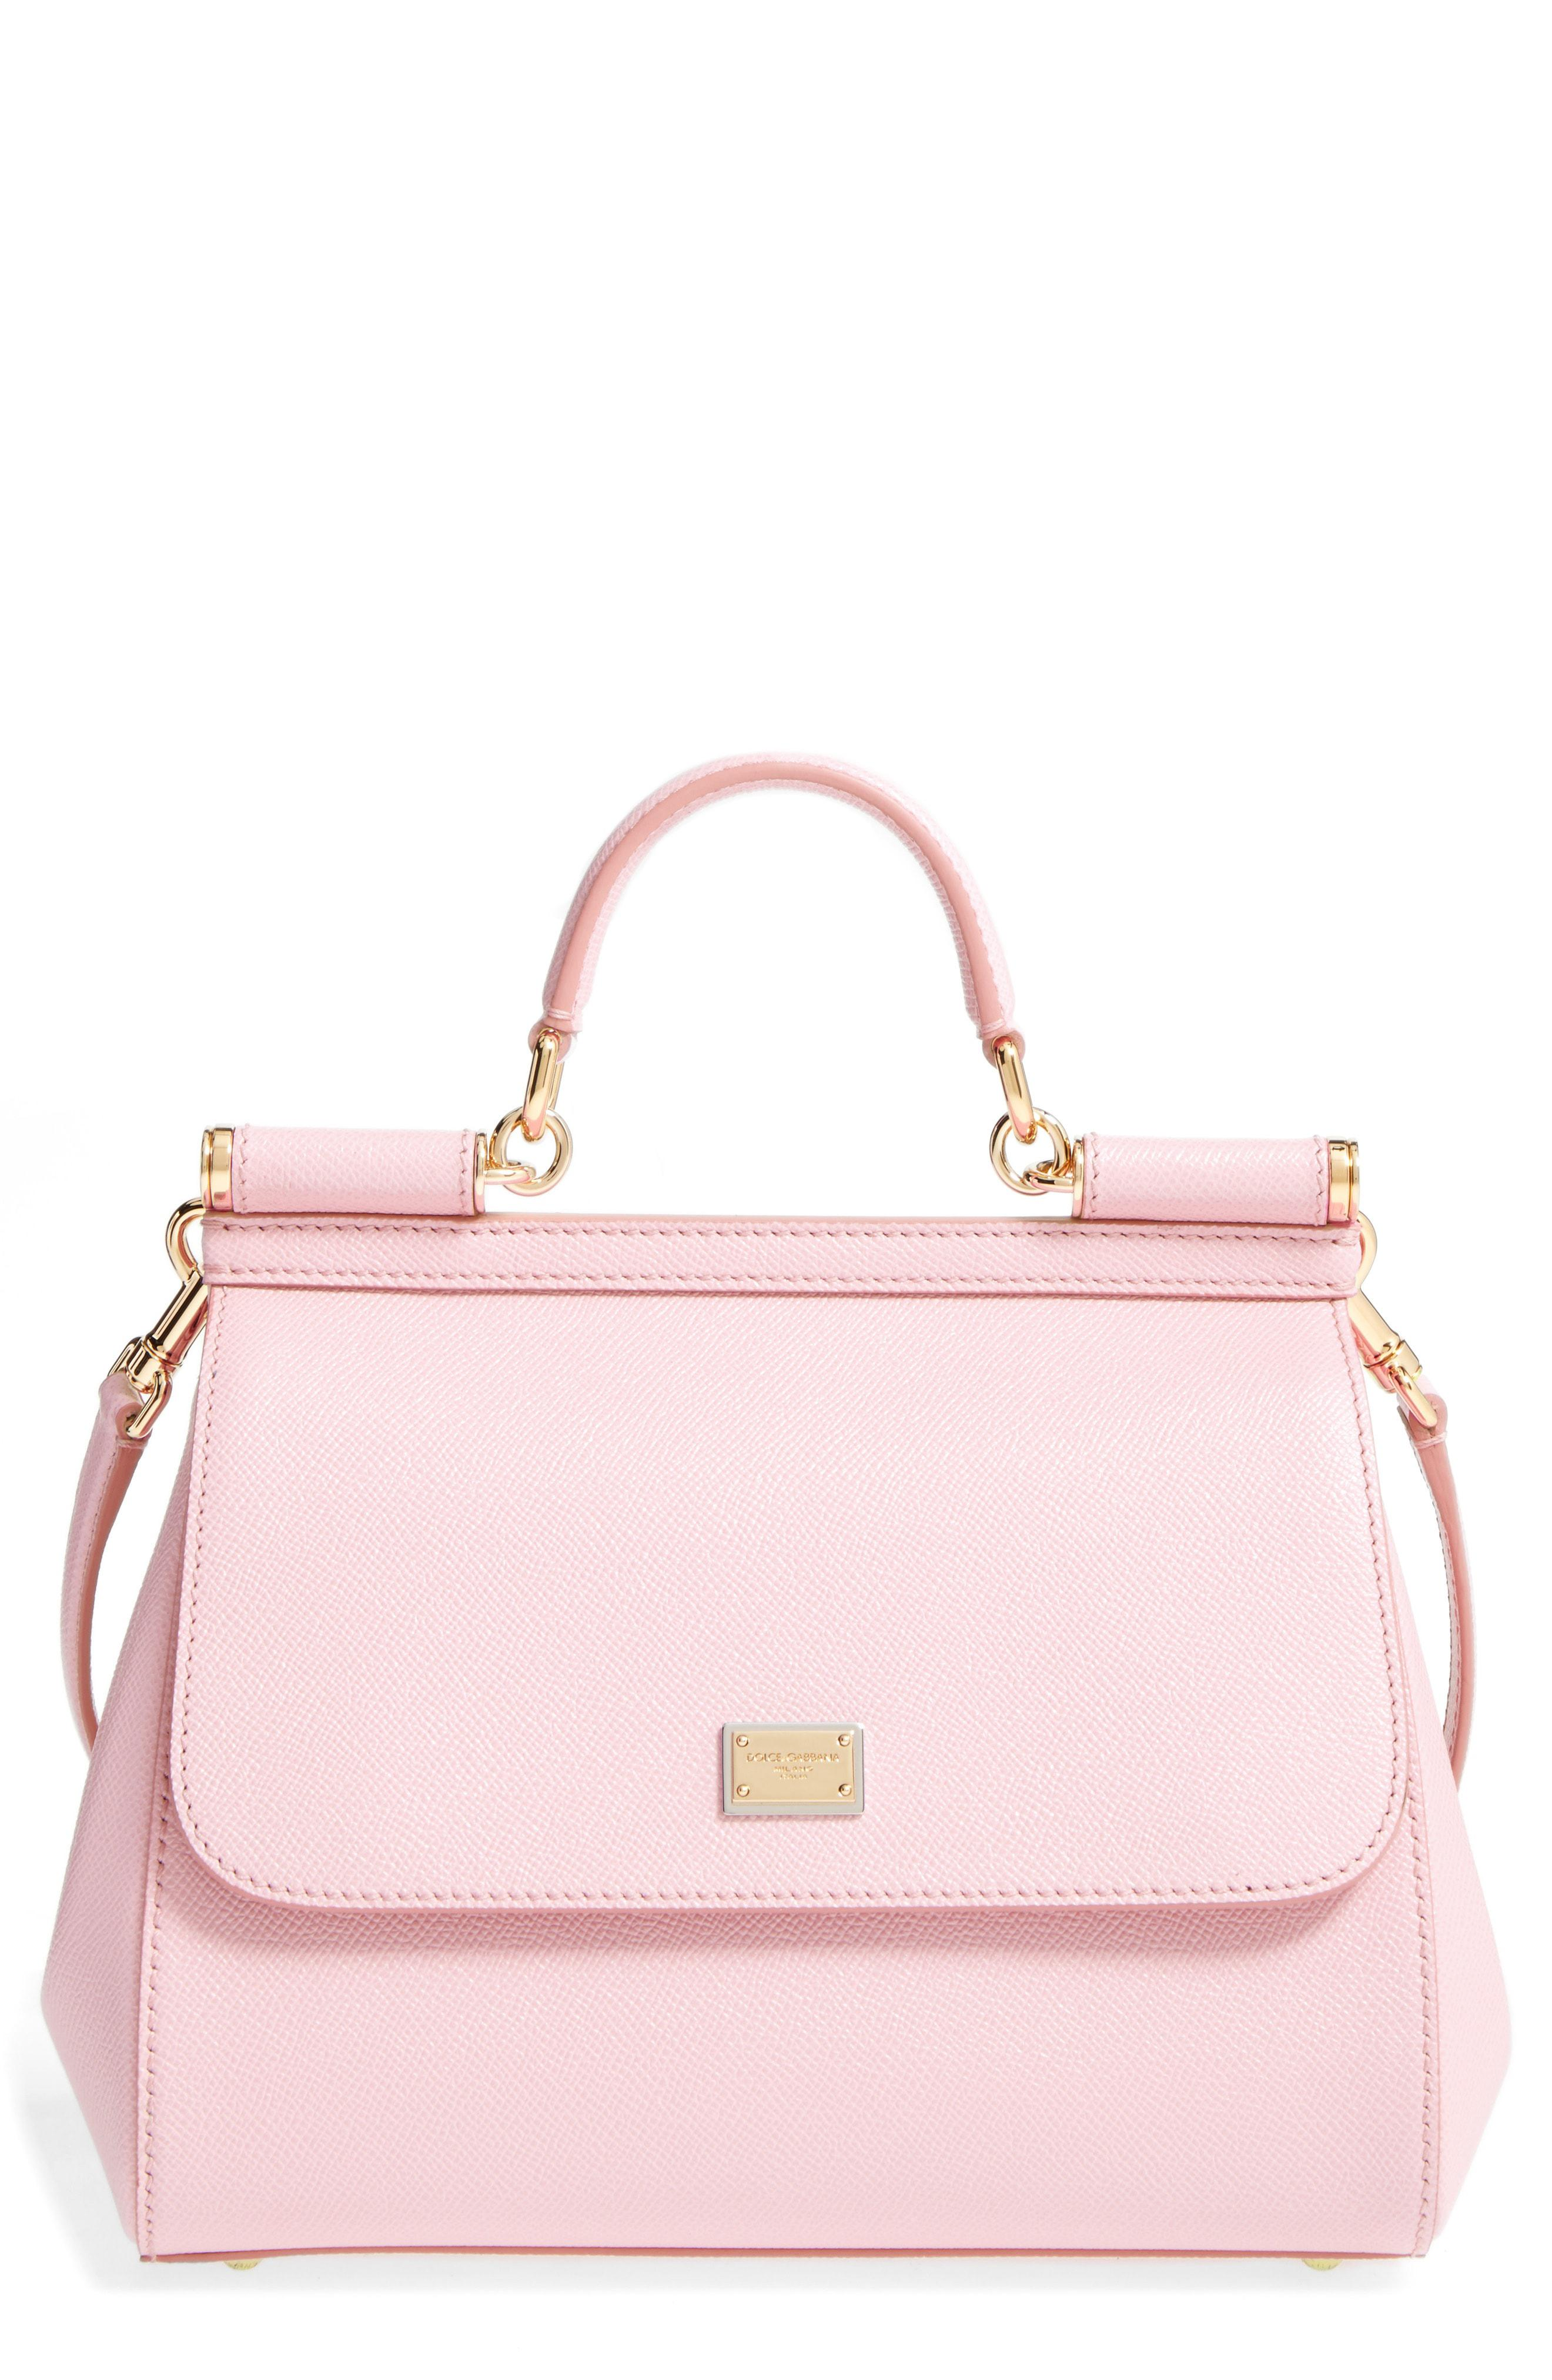 Lyst - Dolce   Gabbana  small Miss Sicily  Leather Satchel in Pink ac49cffcdb